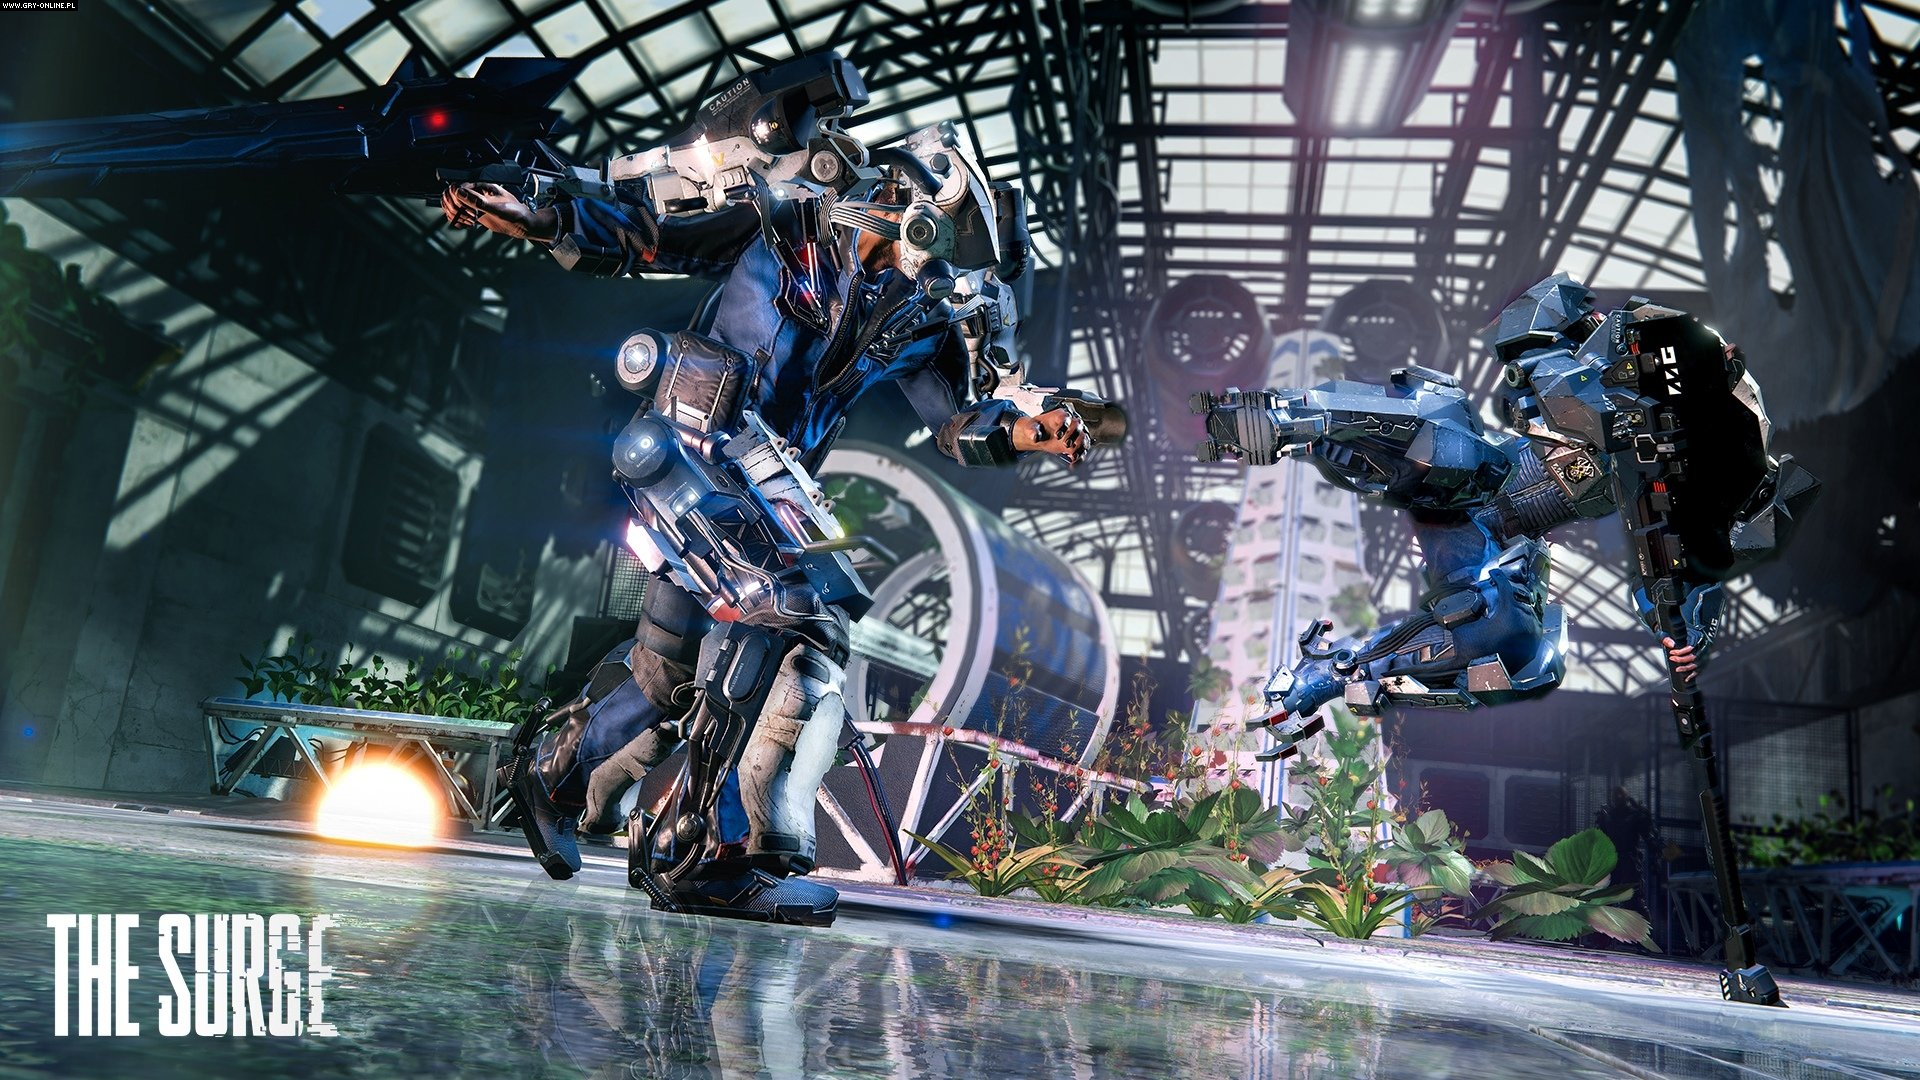 The Surge PC, PS4, XONE Games Image 6/12, Deck13 Interactive, Focus Home Interactive